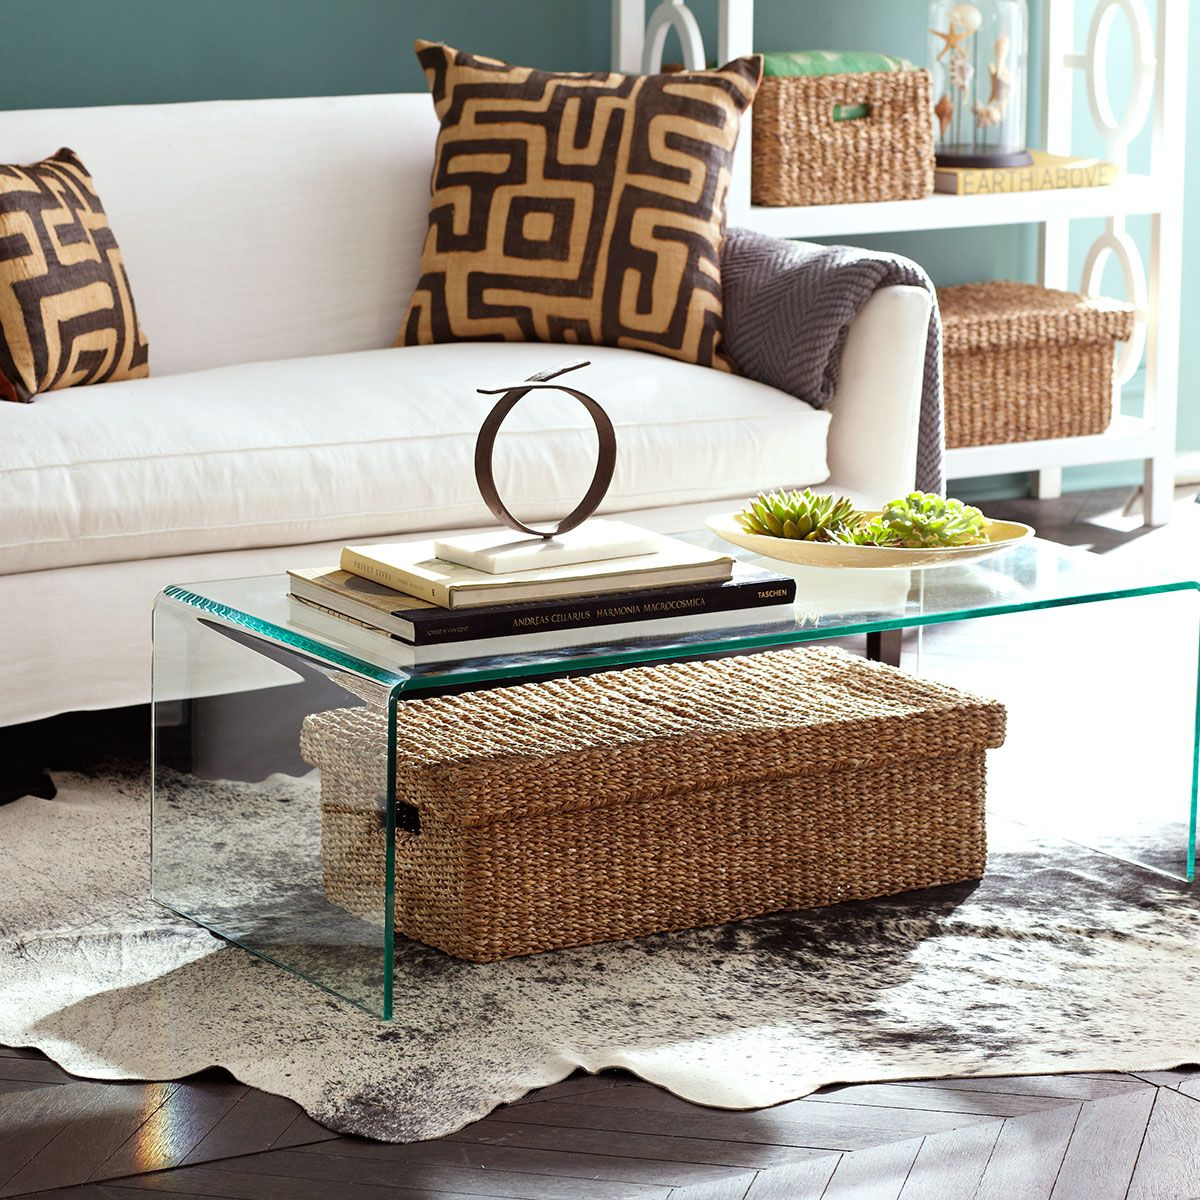 Wisteria waterfall coffee table look for acrylic version